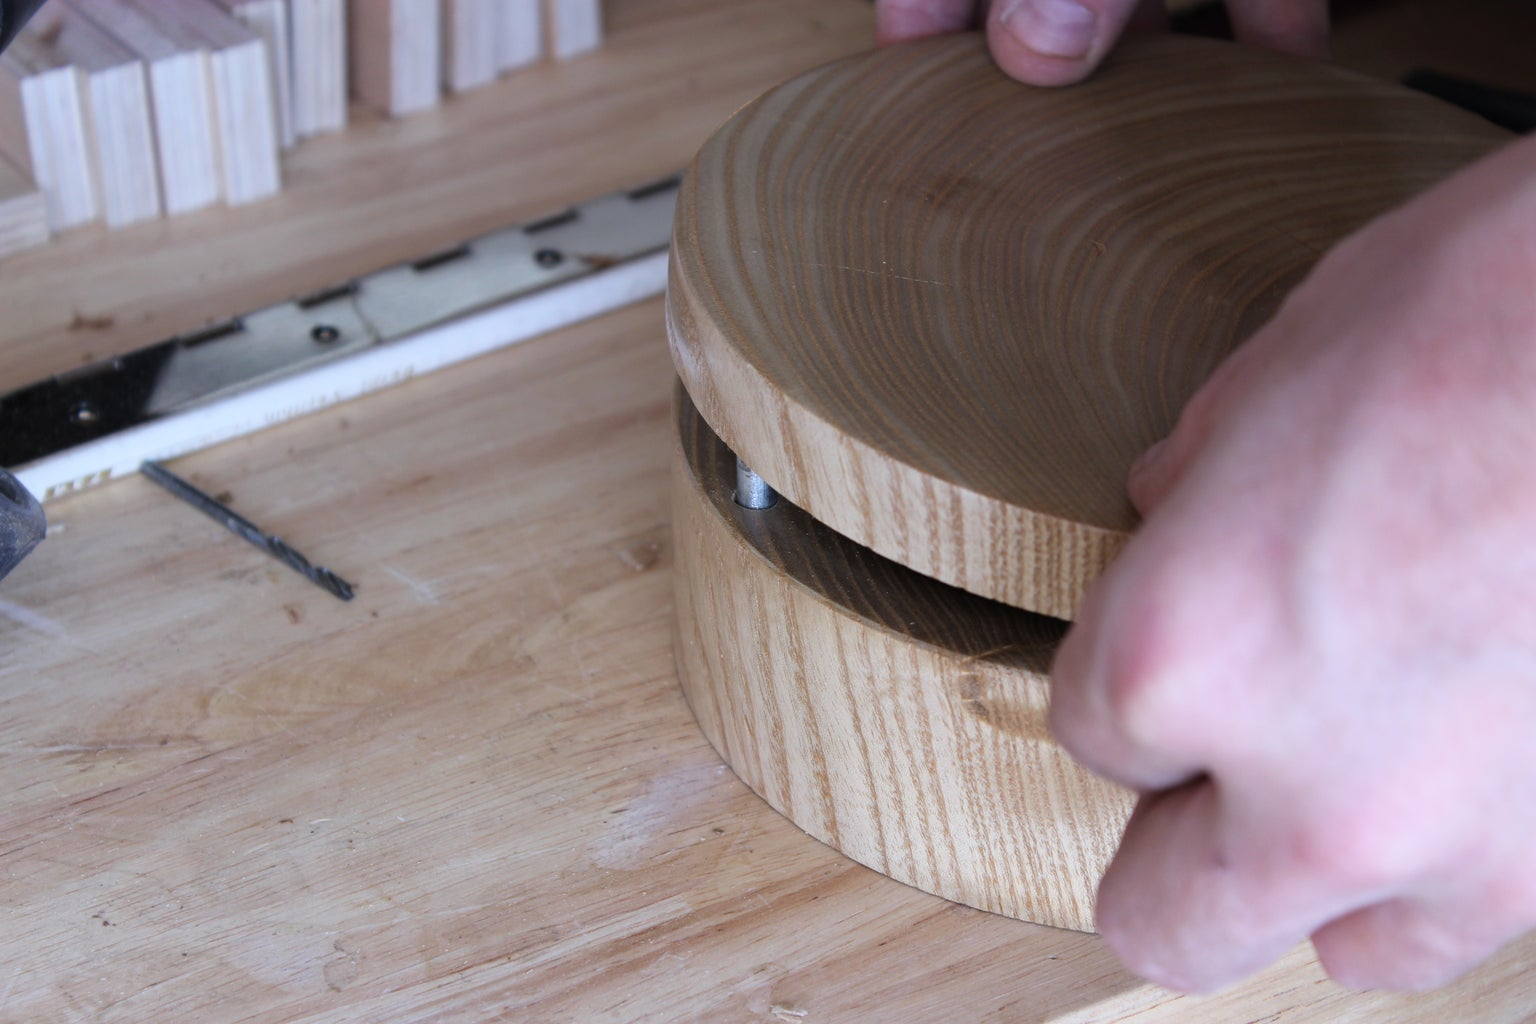 Finish the Cellar by Attaching the Lid